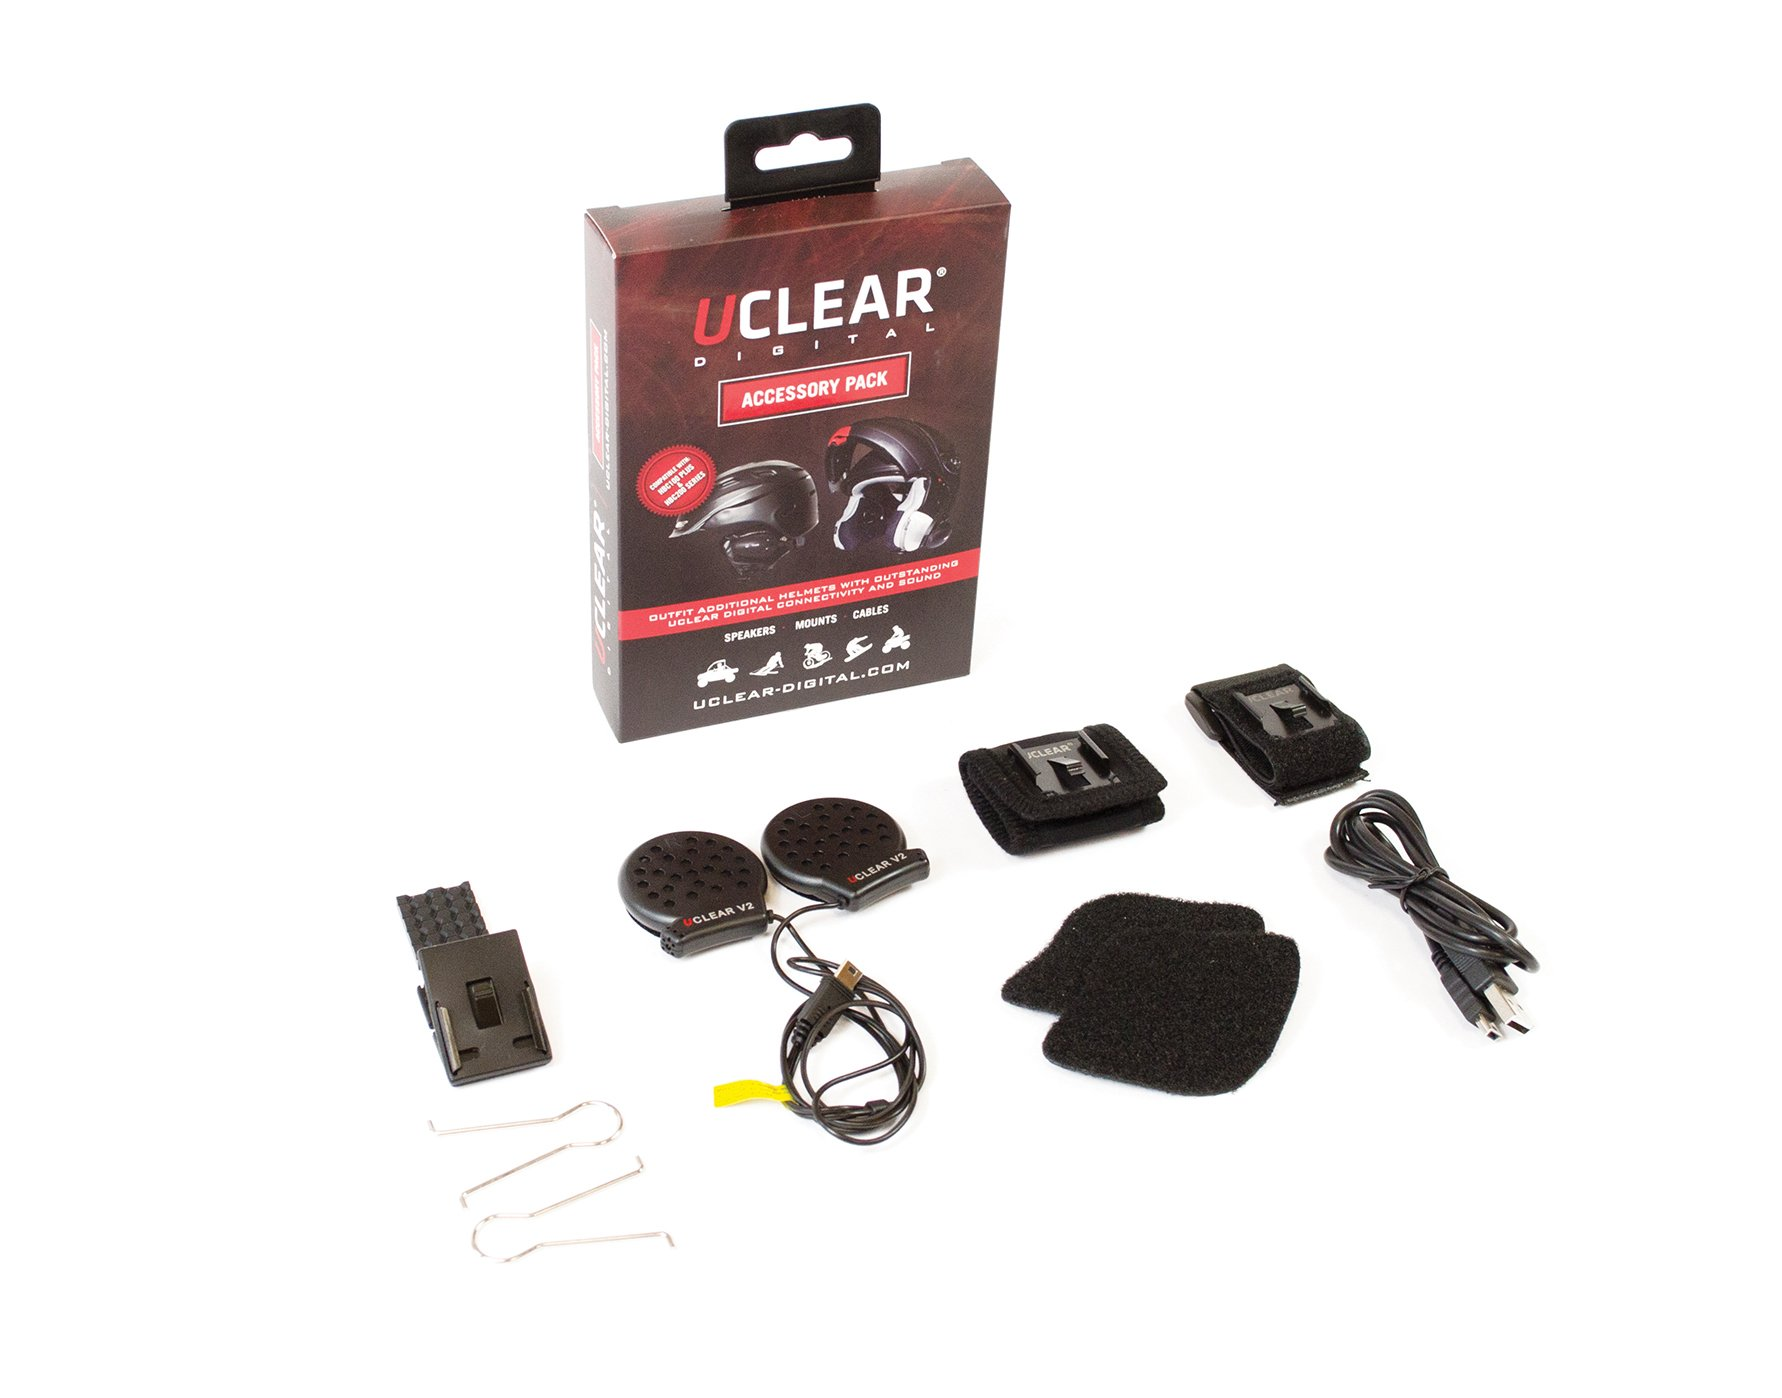 UCLEAR Digital Accessory Pack includes V2 Speakers, Mounting Hardware and USB Cablecompatible with AMP, HBC100 PLUS, HBC150 and HBC200 Bluetooth Headset Series (NOT HBC100 or Vybe)